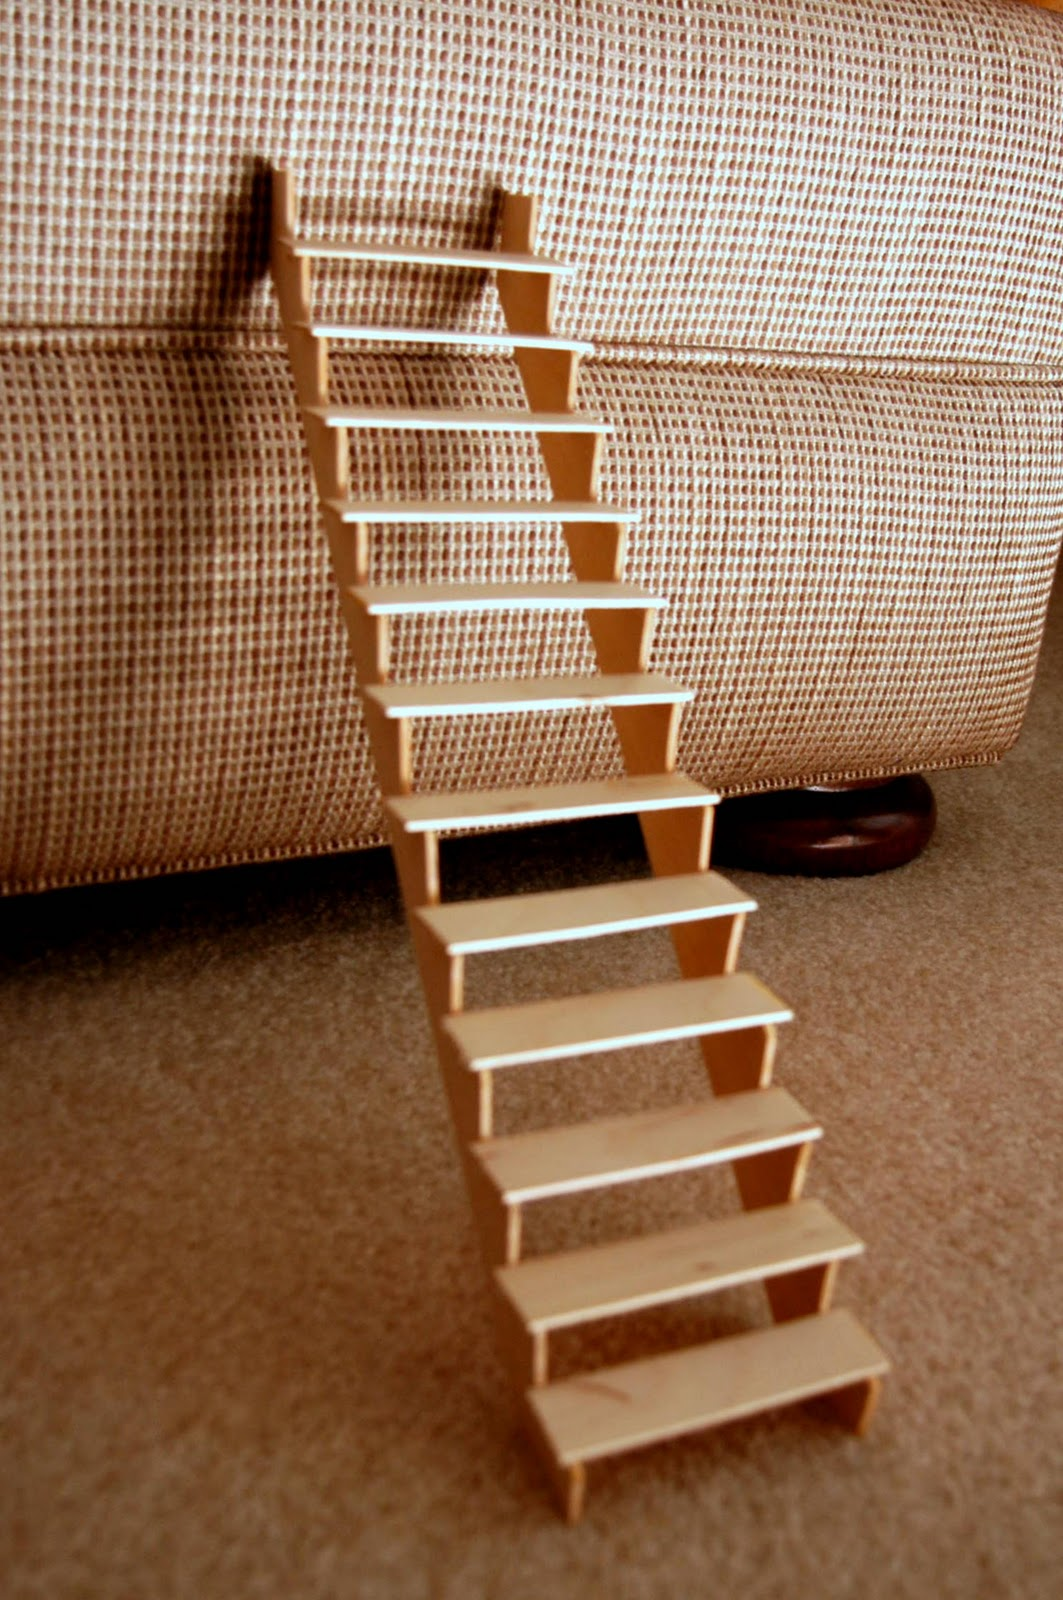 Merveilleux This Was A Huge Accomplishment That Took Way Less Time Than I Originally  Anticipated. The Sides Are Balsa Wood And The Steps Are Popsicle Sticks.